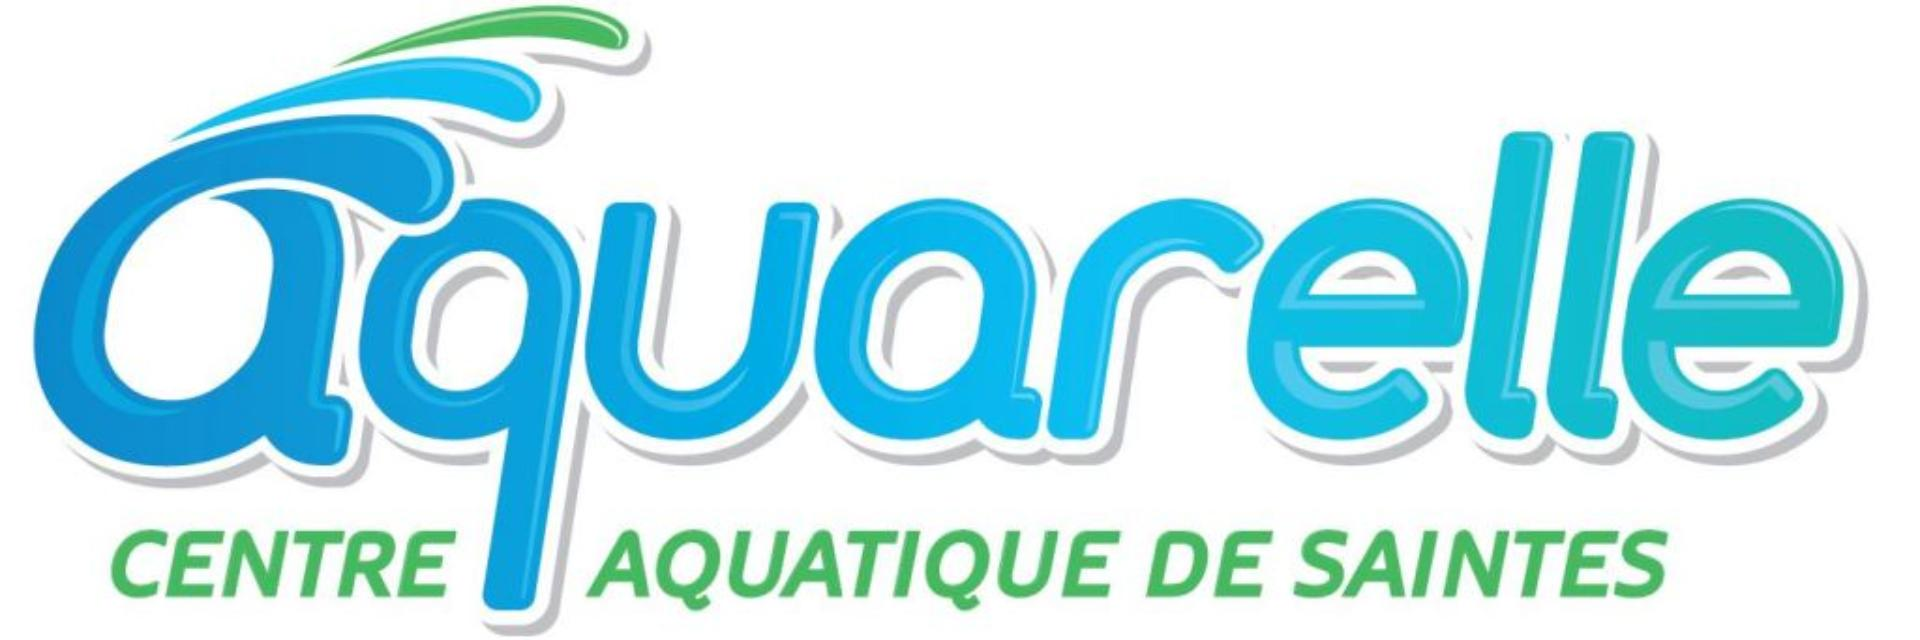 Centre Aquatique Saintes